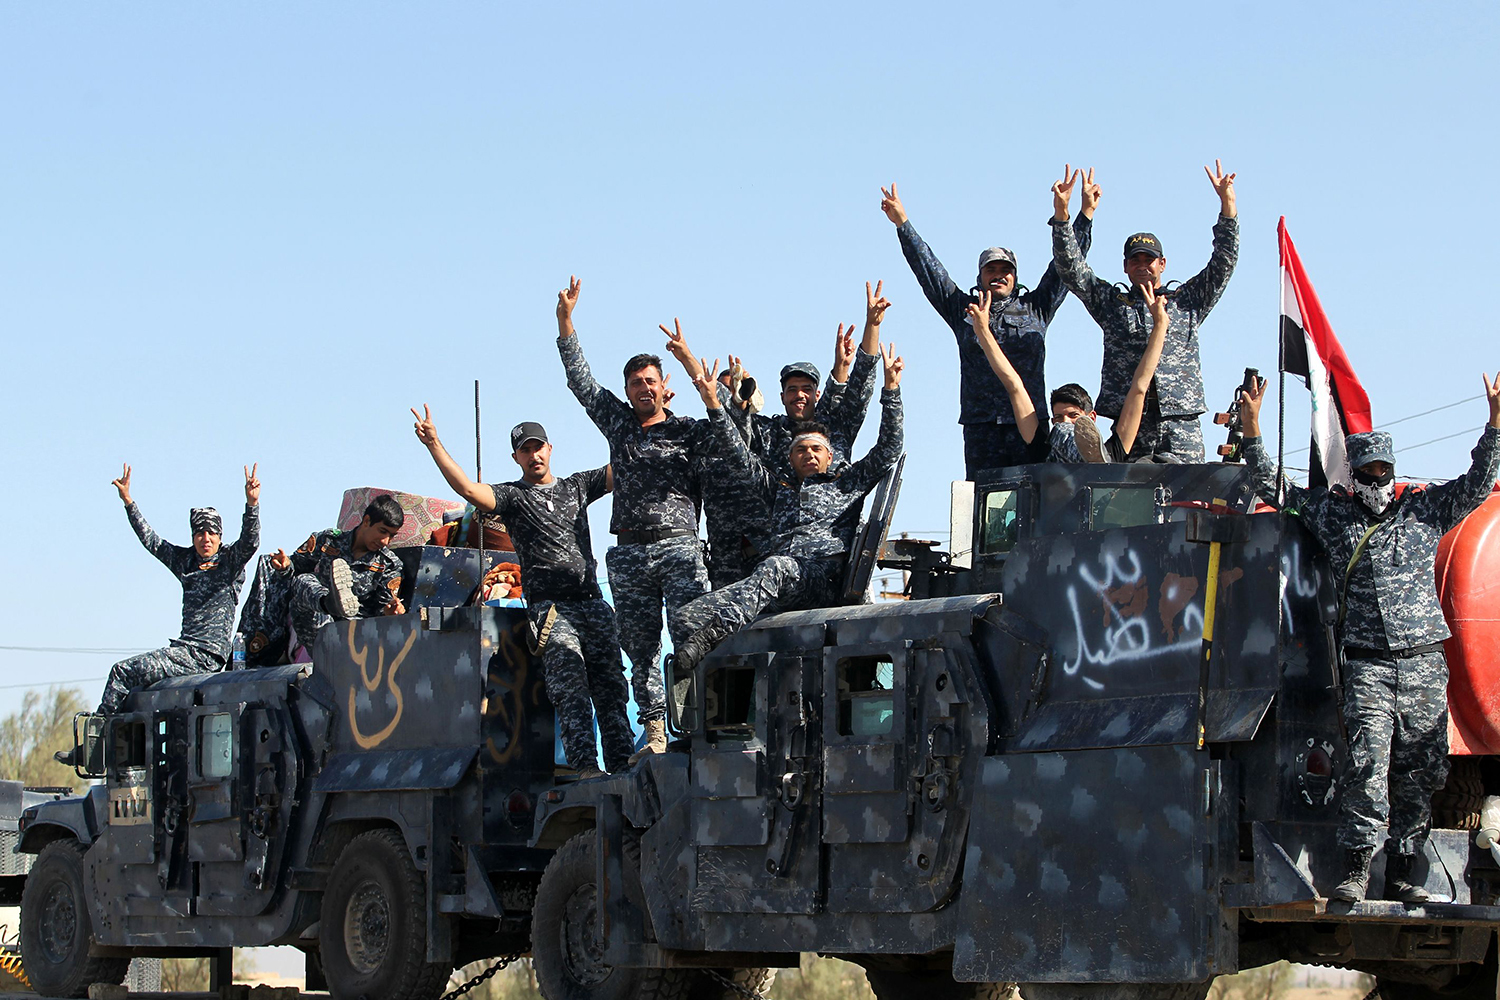 Iraqi forces gesture as they gather at the Qayyarah military base, about 60 kilometres (35 miles) south of Mosul, on October 16, 2016, as they prepare for an offensive to retake Mosul, the last IS-held city in the country, after regaining much of the territory the jihadists seized in 2014 and 2015. / AFP PHOTO / AHMAD AL-RUBAYE / TT / kod 444